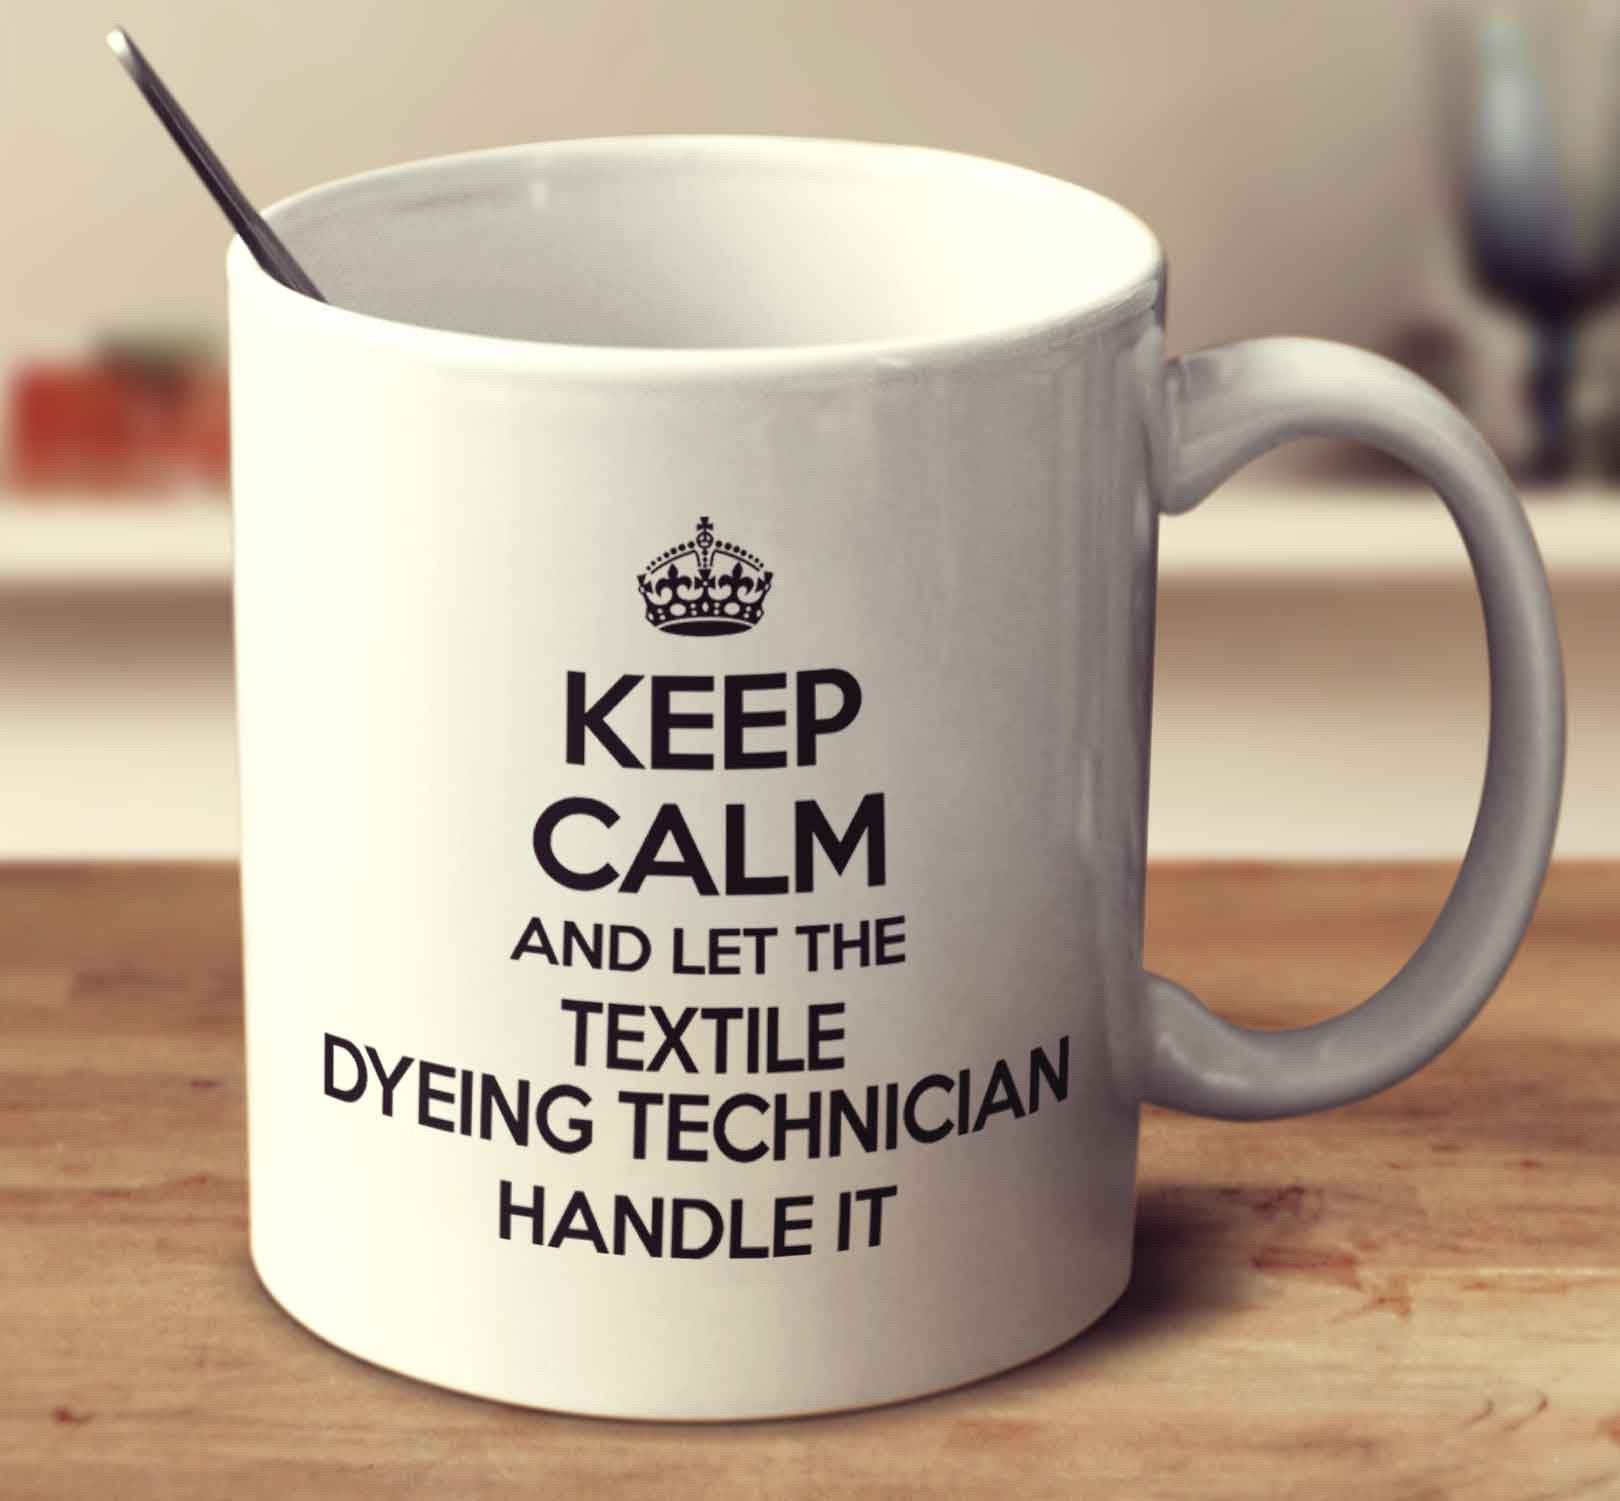 Keep Calm And Let The Textile Dyeing Technician Handle It